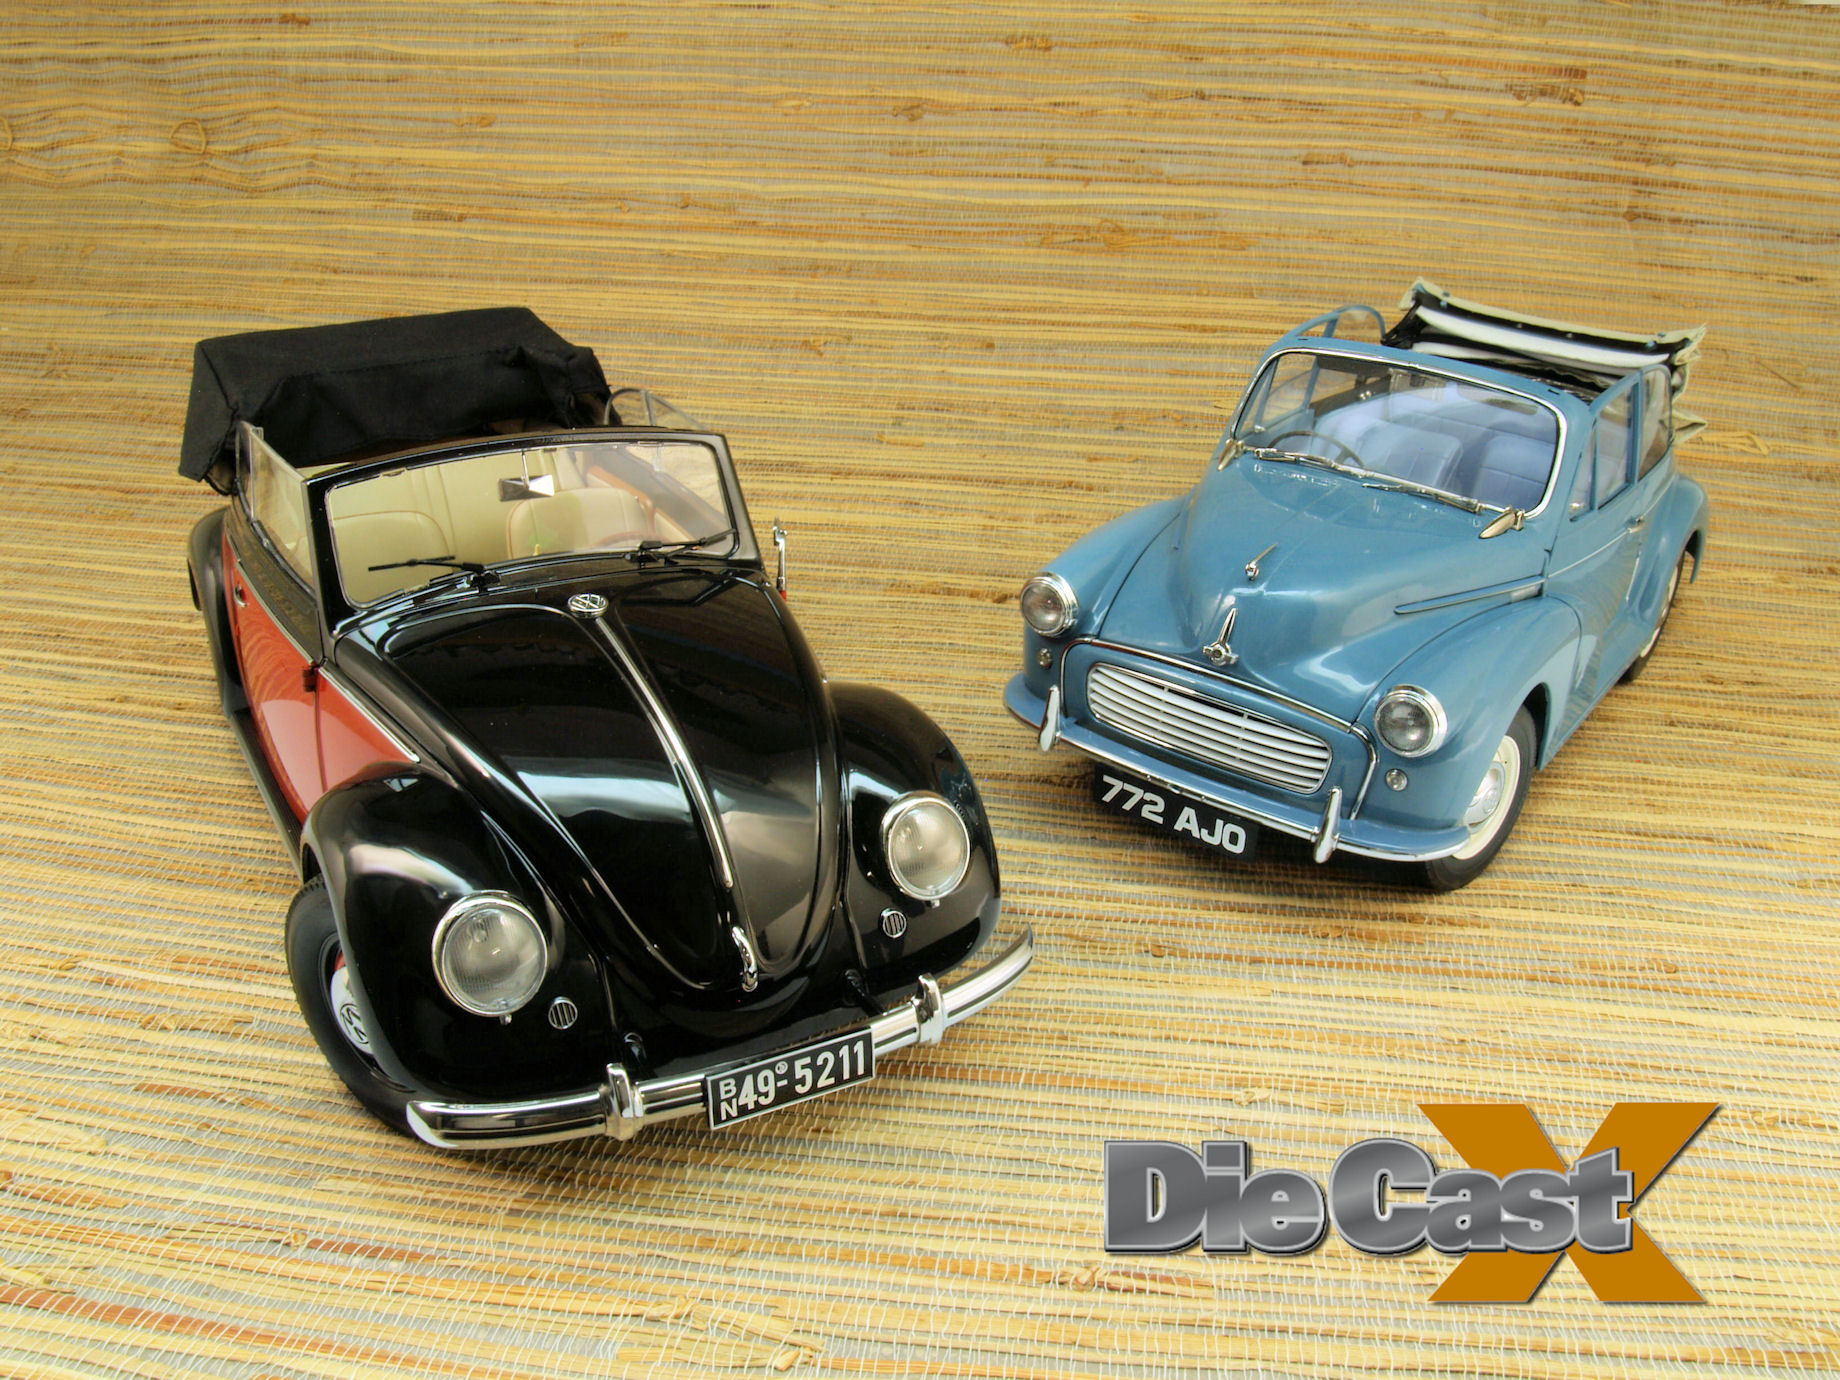 Sunstar's 1:12 Morris Minor and VW Cabriolet: Cheap Thrills